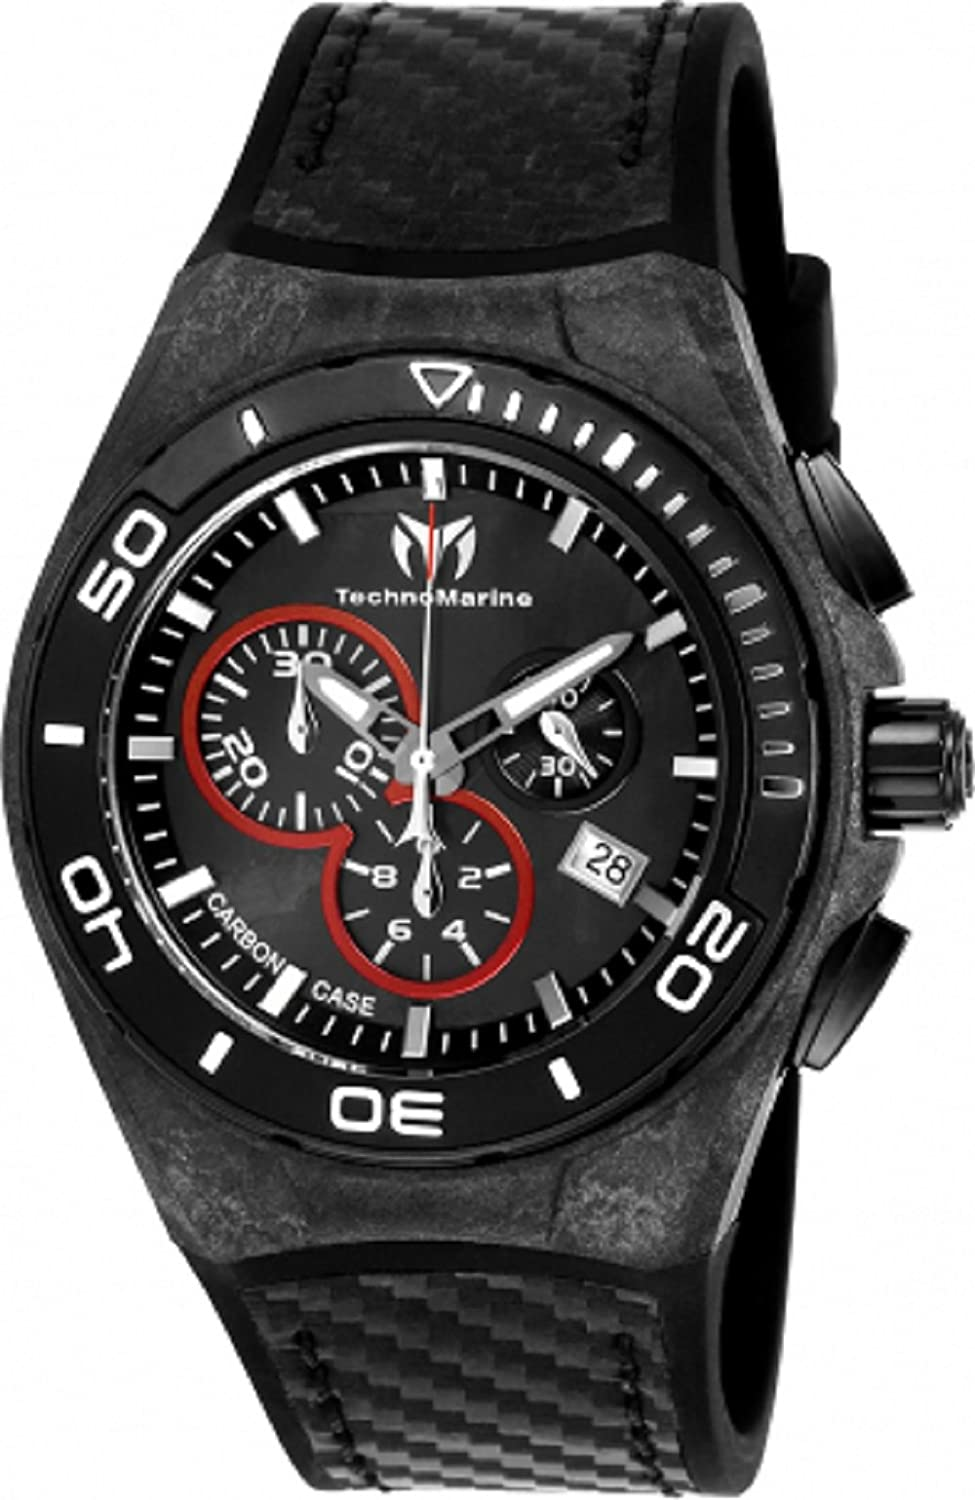 Technomarine Men's TM-116004 Black Carbon Swiss Chronograph